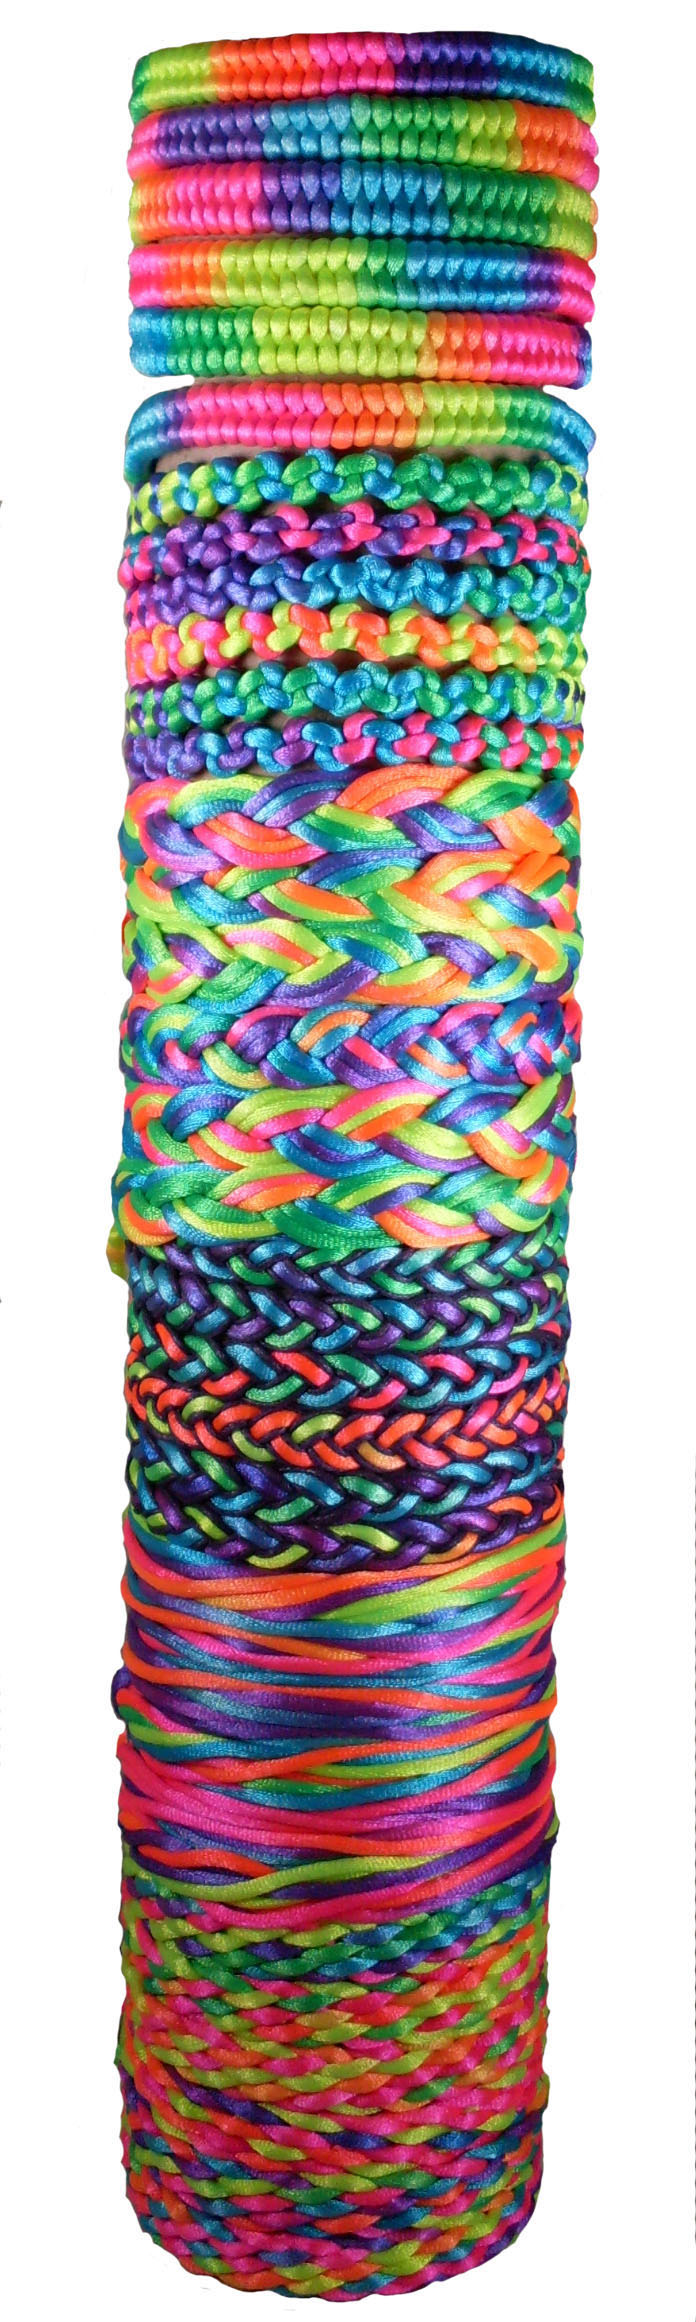 Reduced Price for Special Limited Time Tie Dye Bracelet Pre Pack